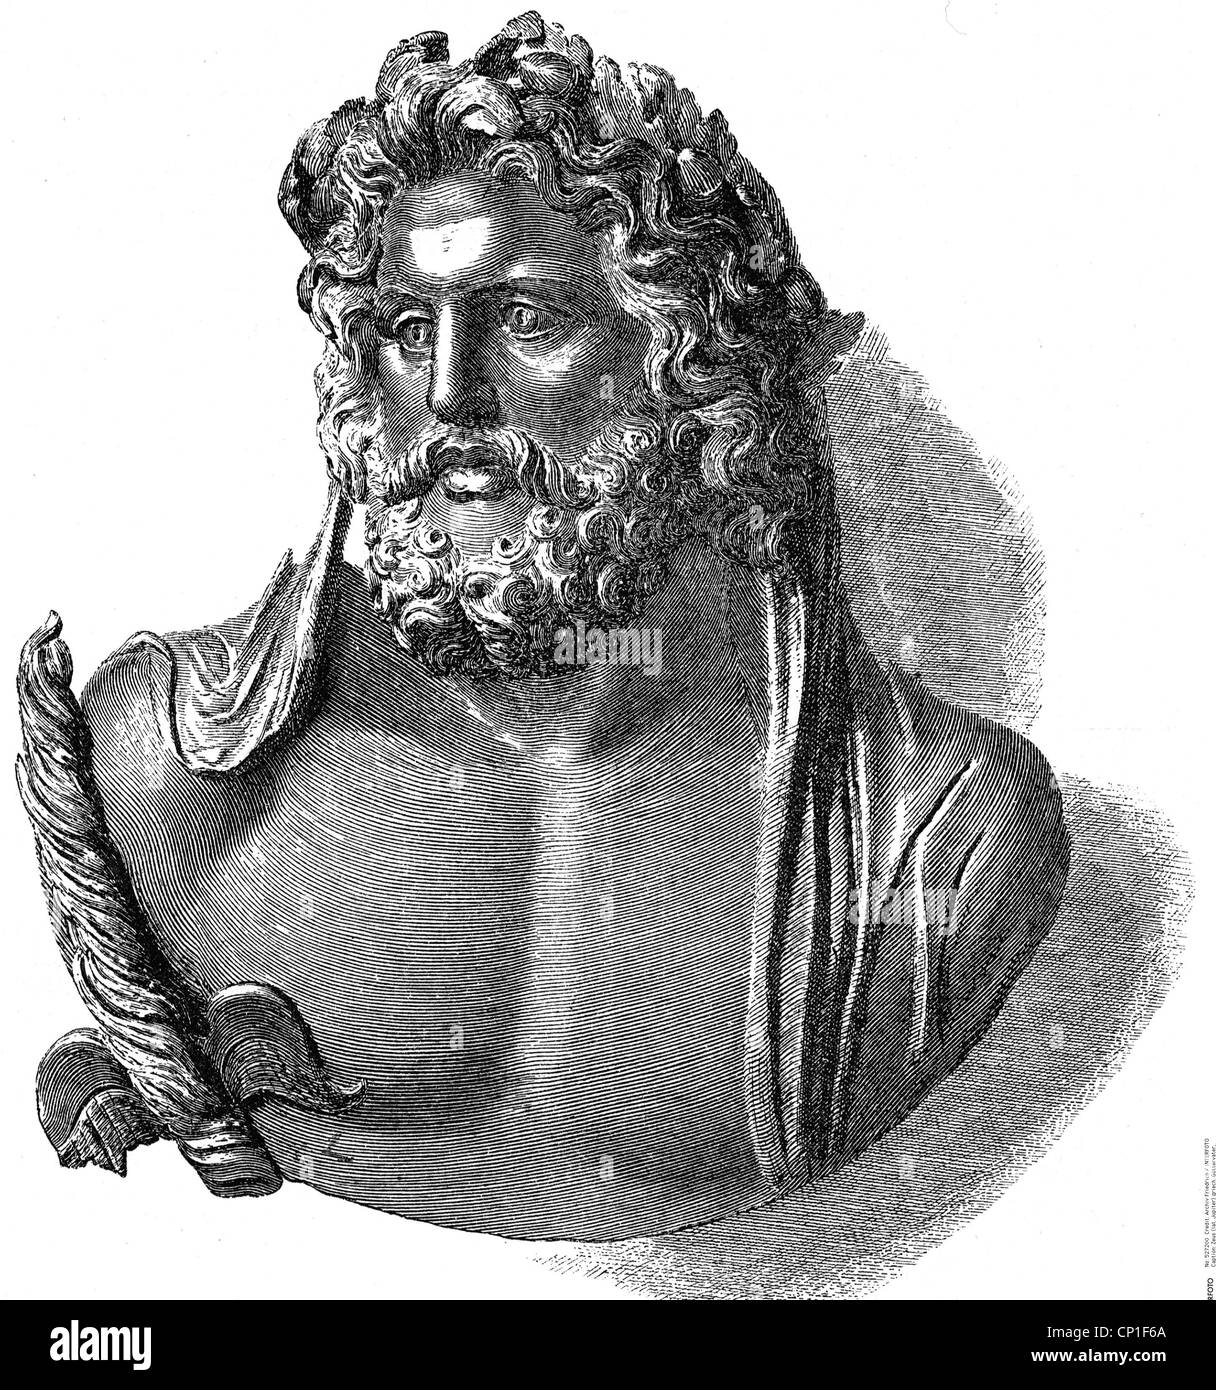 zeus latin jupiter greek divine king portrait zeus of stock